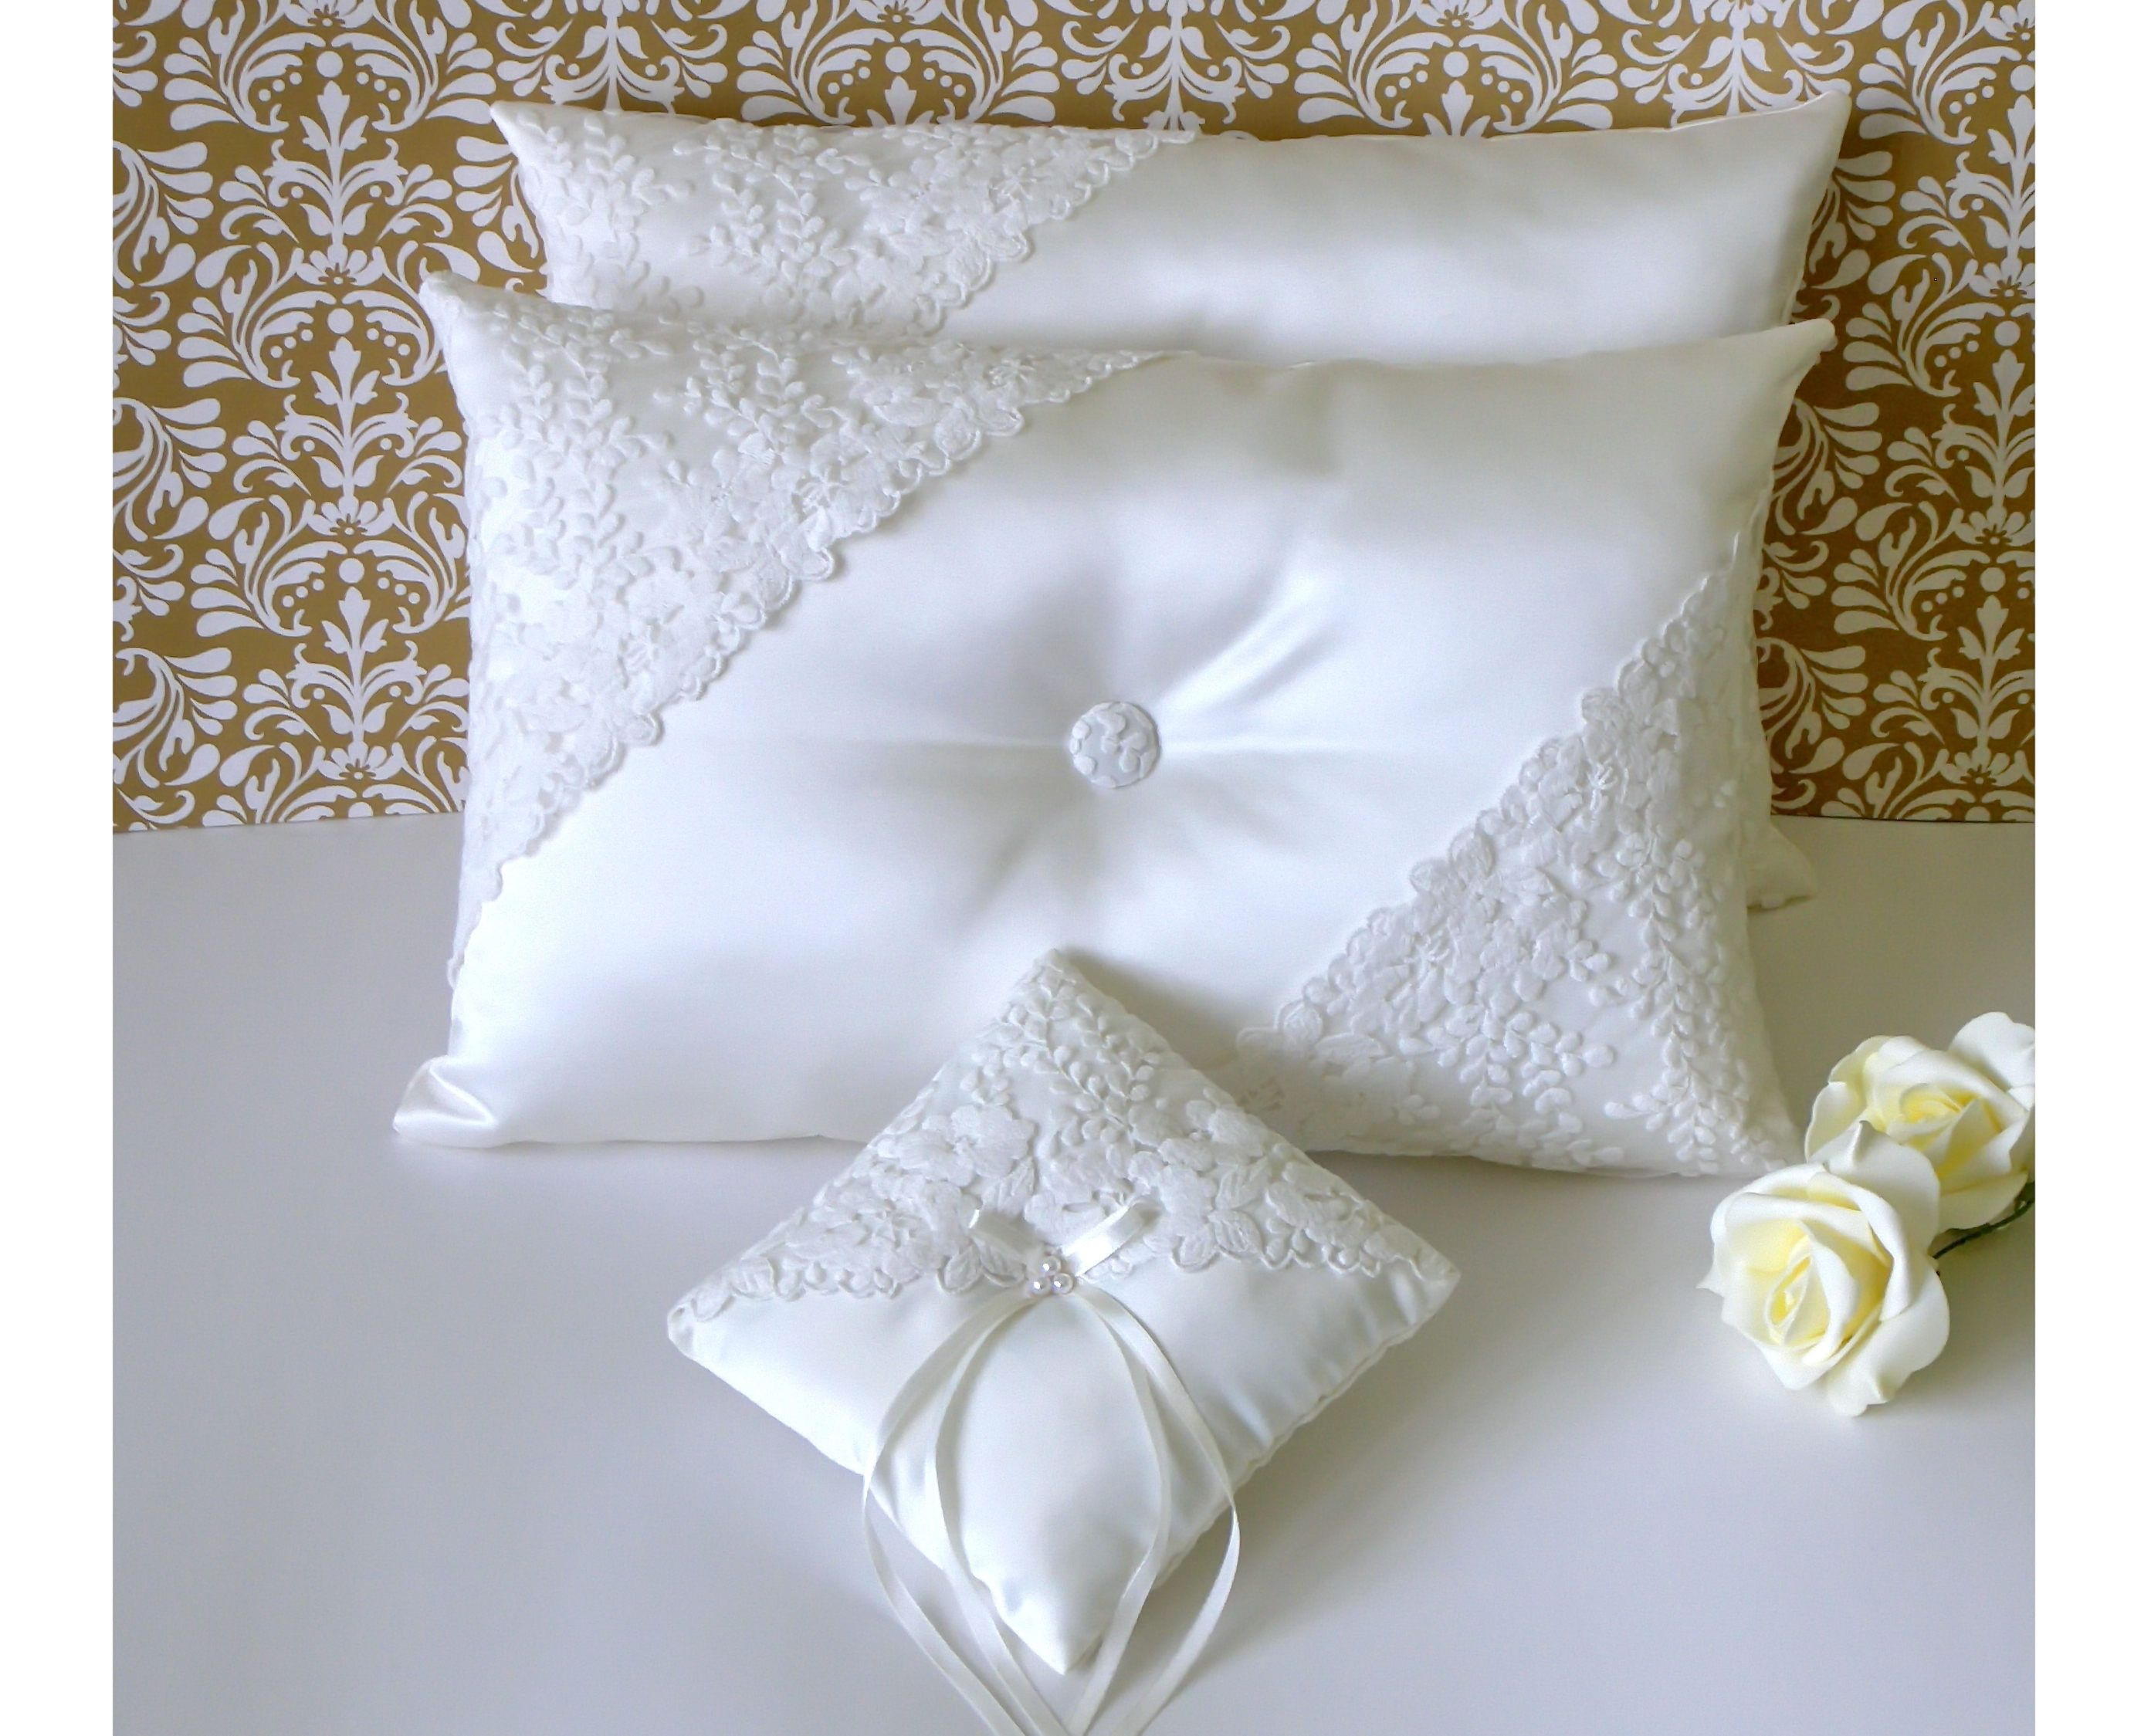 Set Of Ivory Wedding Kneeling Pillows And A Matching Ring Pillow Decorated With Embroidered Lace